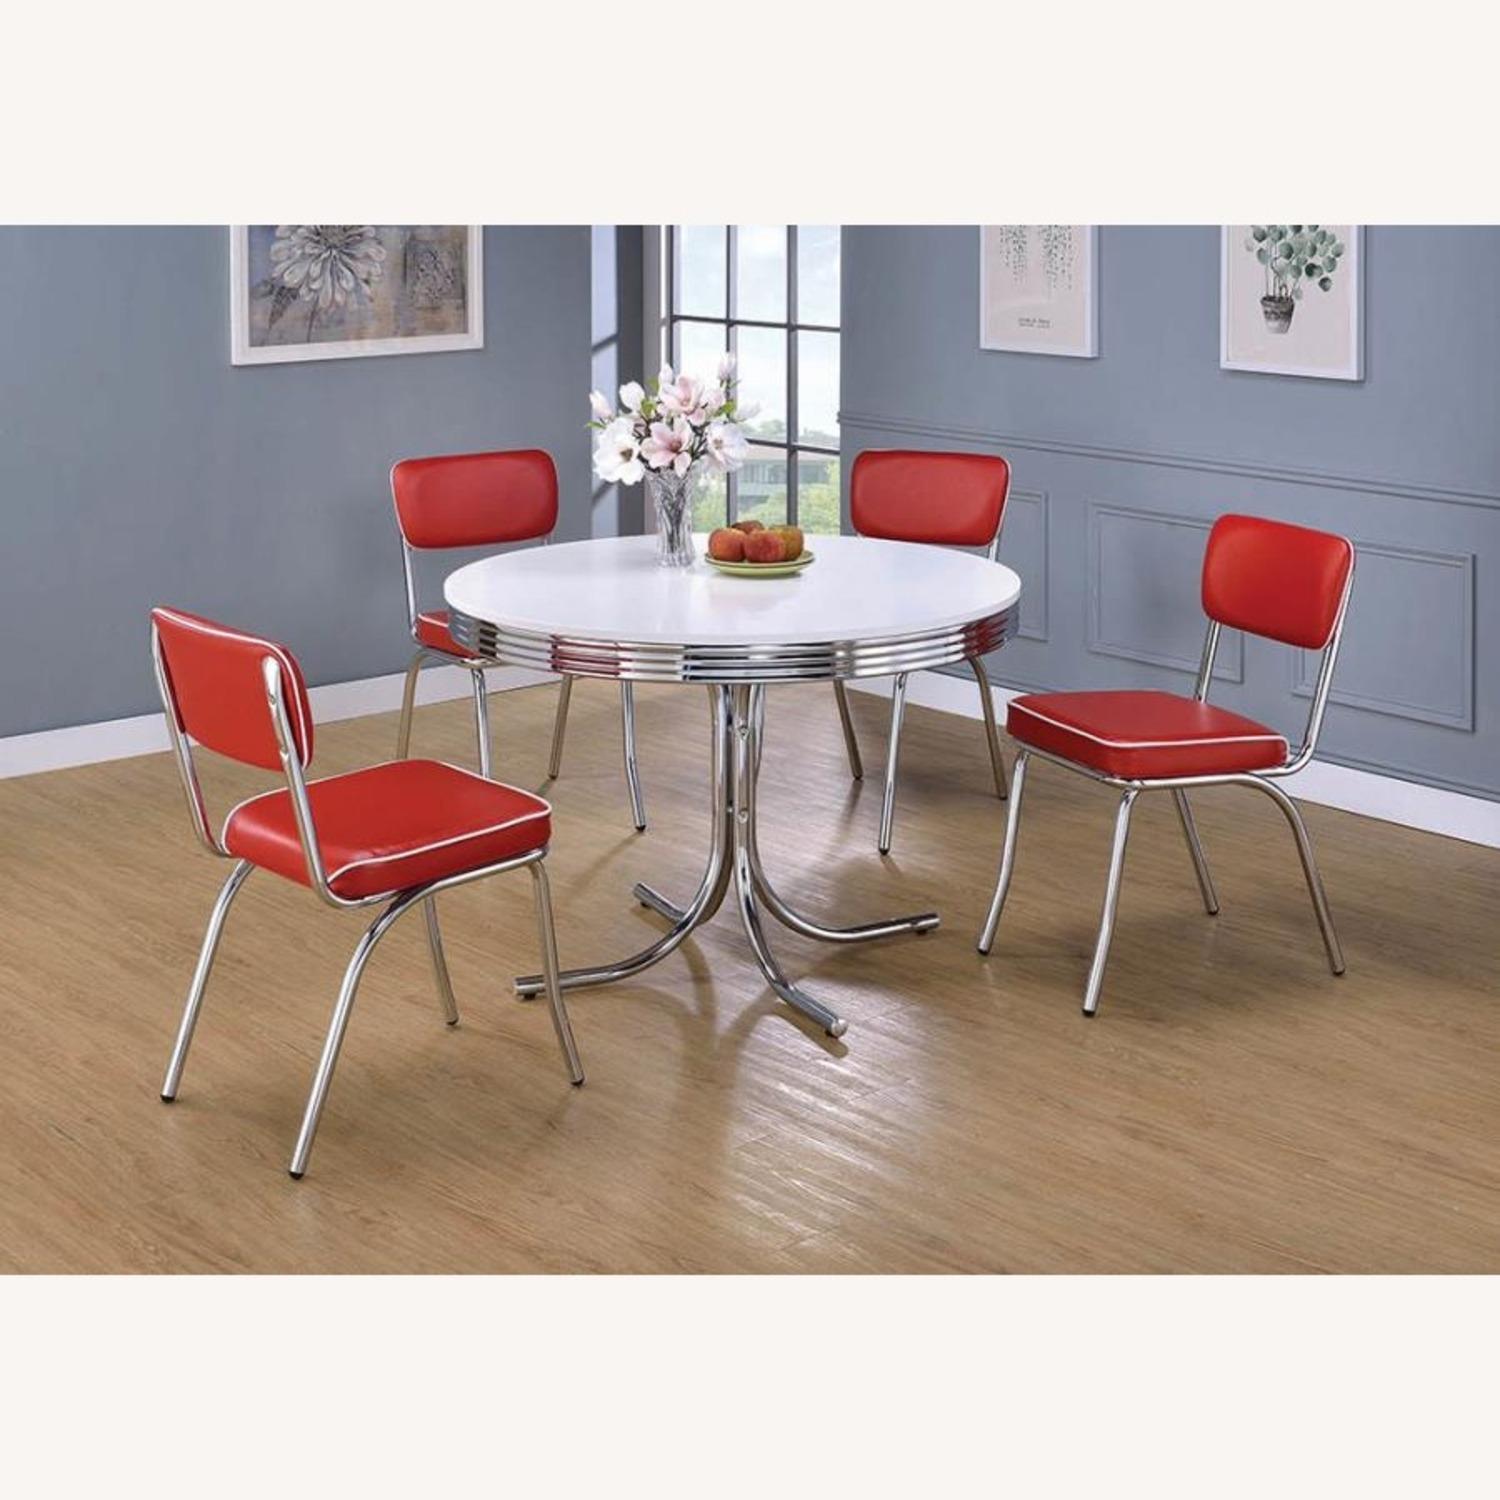 Mid-Century Style Dining Chair In Red Leatherette - image-6